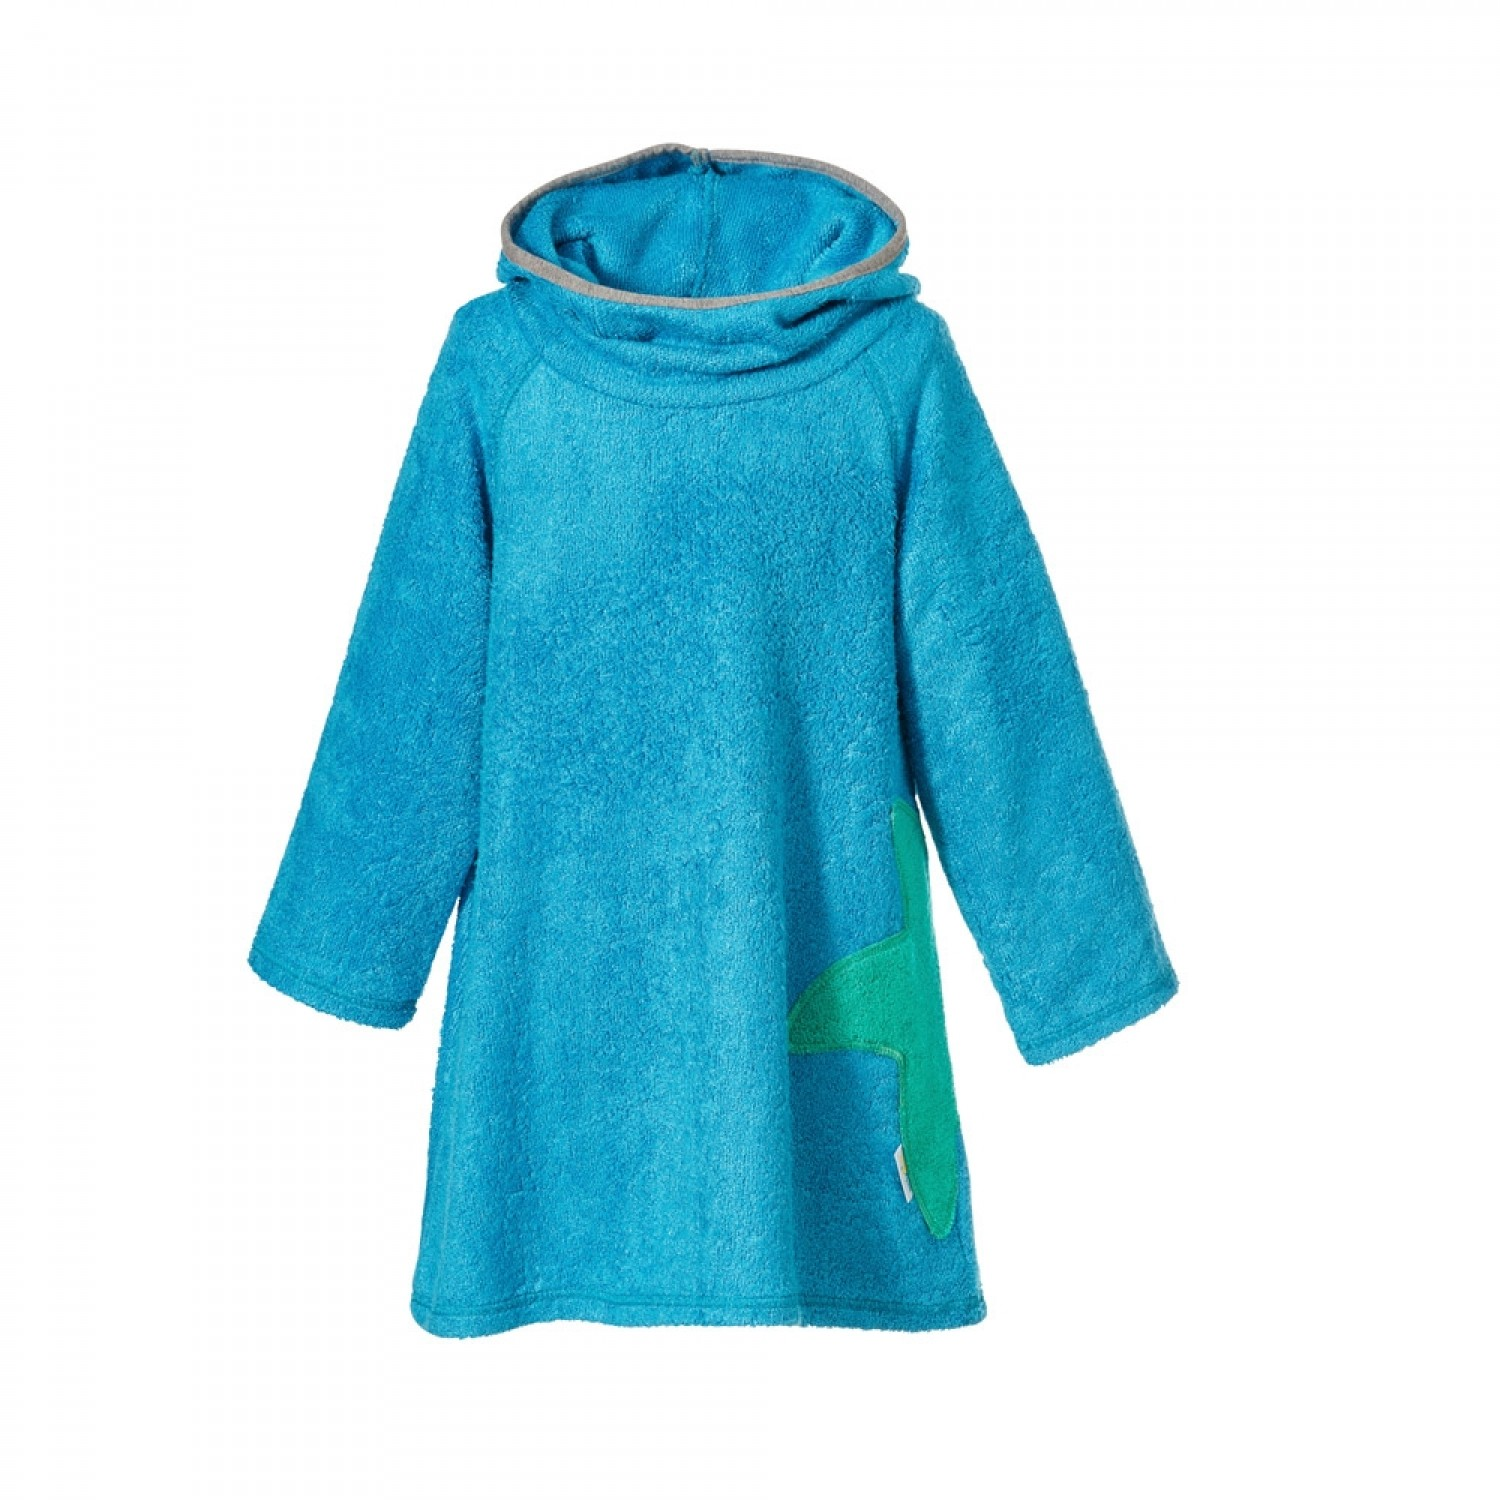 Terrycloth Dress of Bamboo in Caribbean Blue | early fish